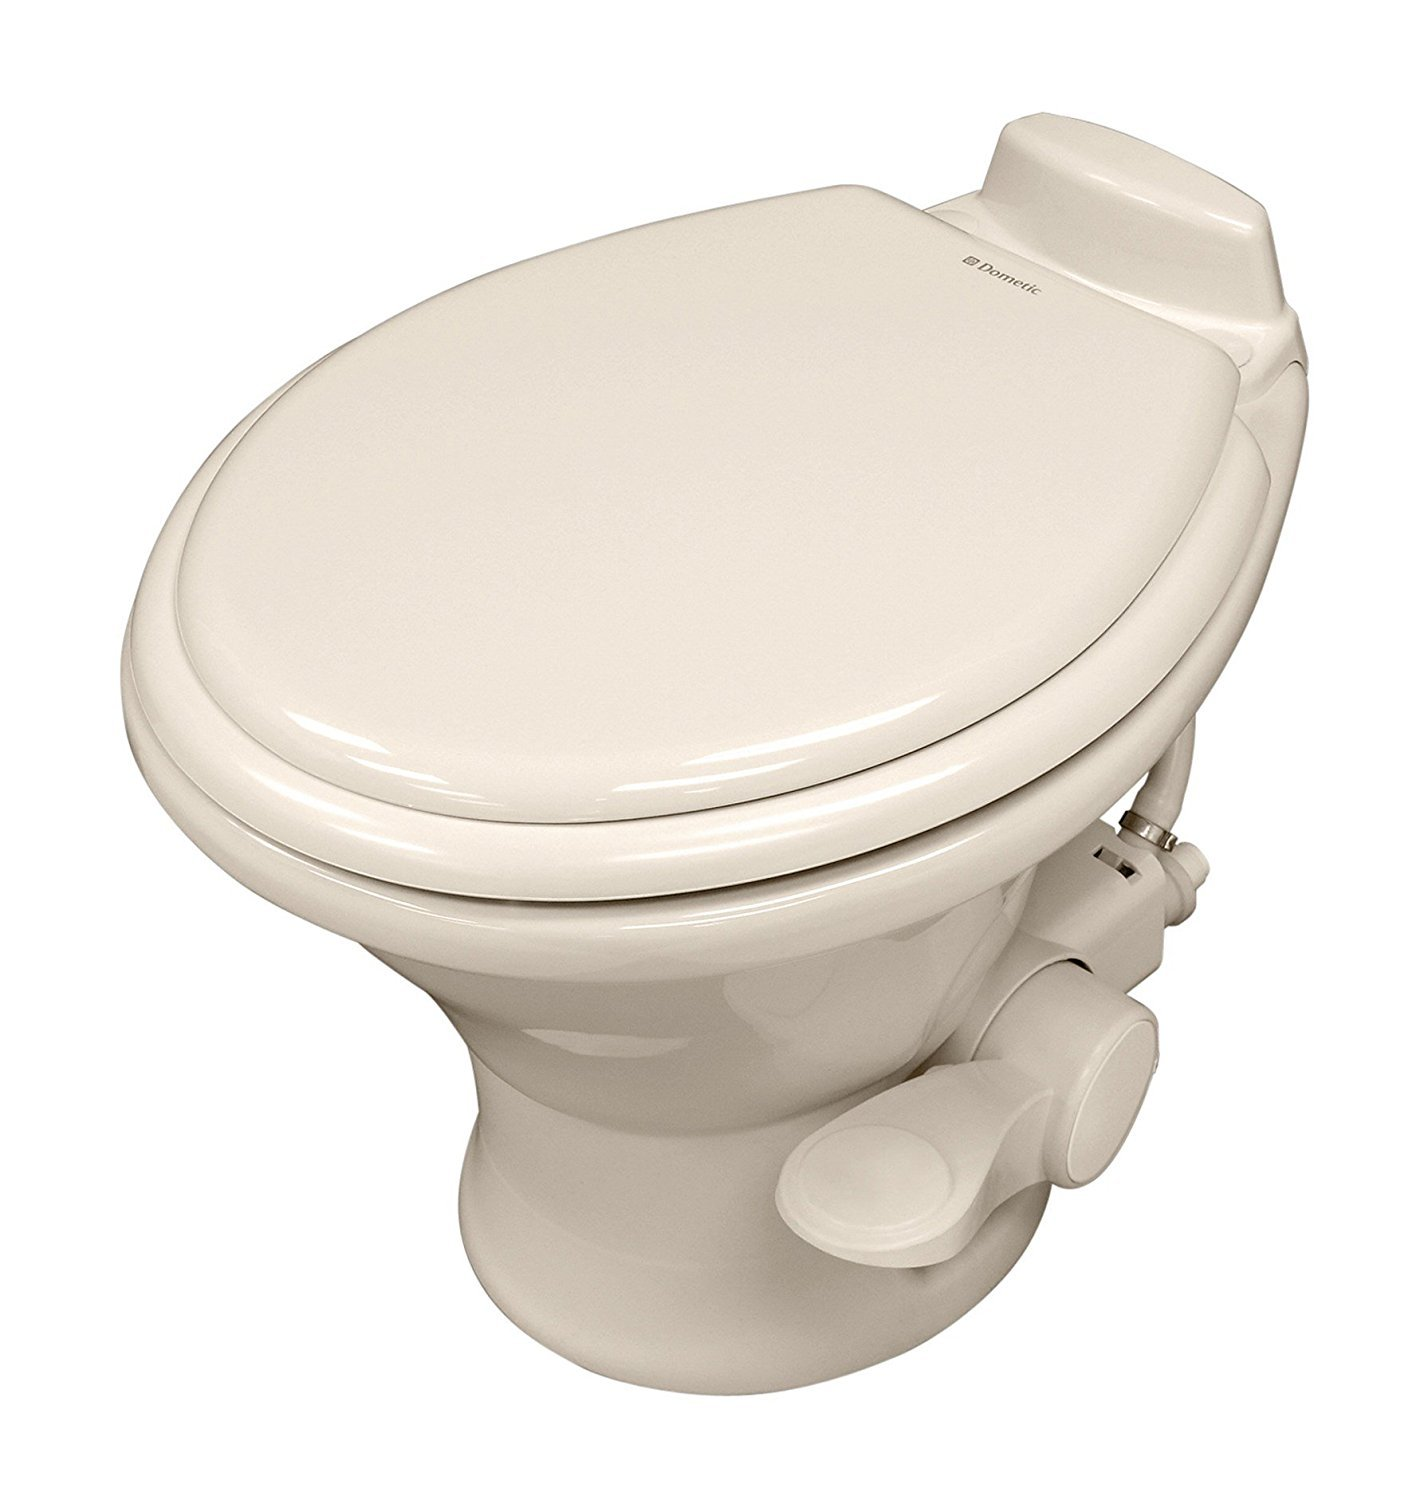 Dometic w 310 Series Low Profile Toilet 14'' Height 302311733, Slow Close Wood Seat, Bone with Hand Sprayer